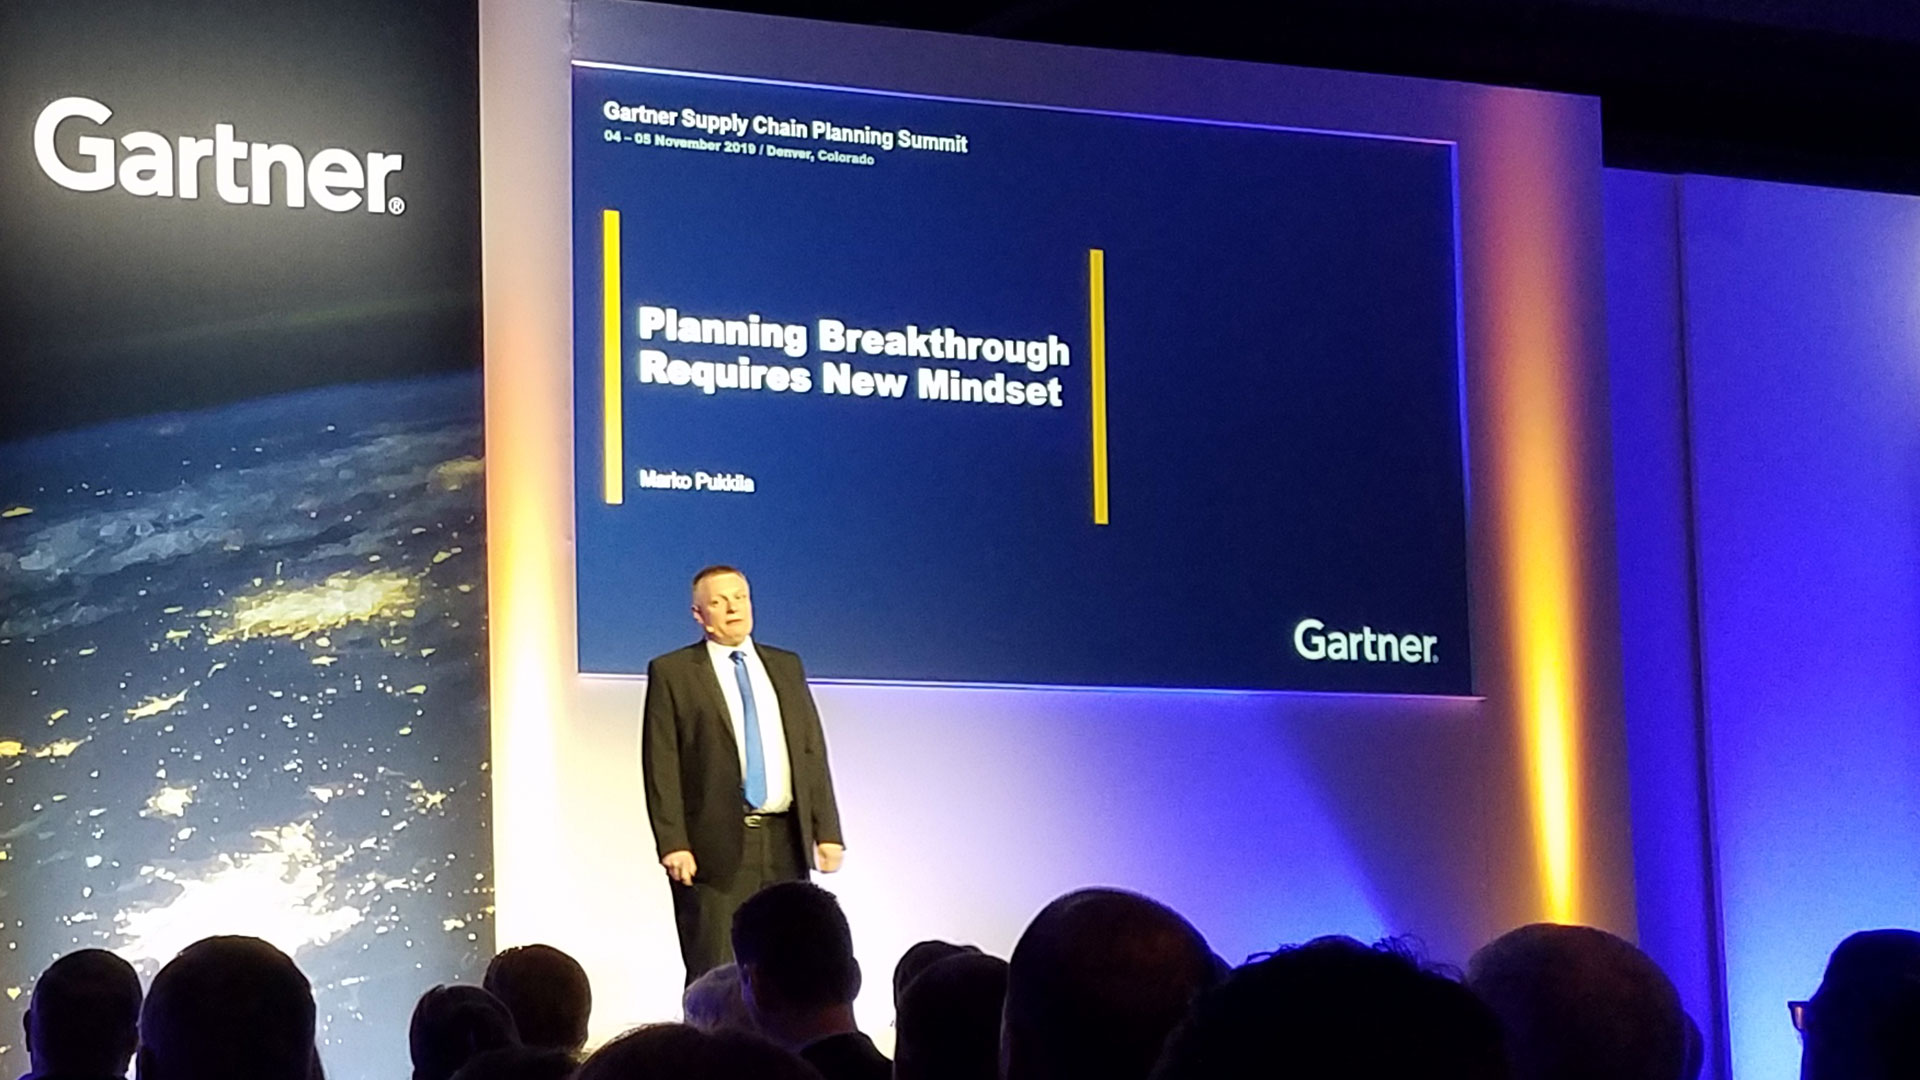 Top 10 Takeaways from the Gartner Supply Chain Planning Conference 2019